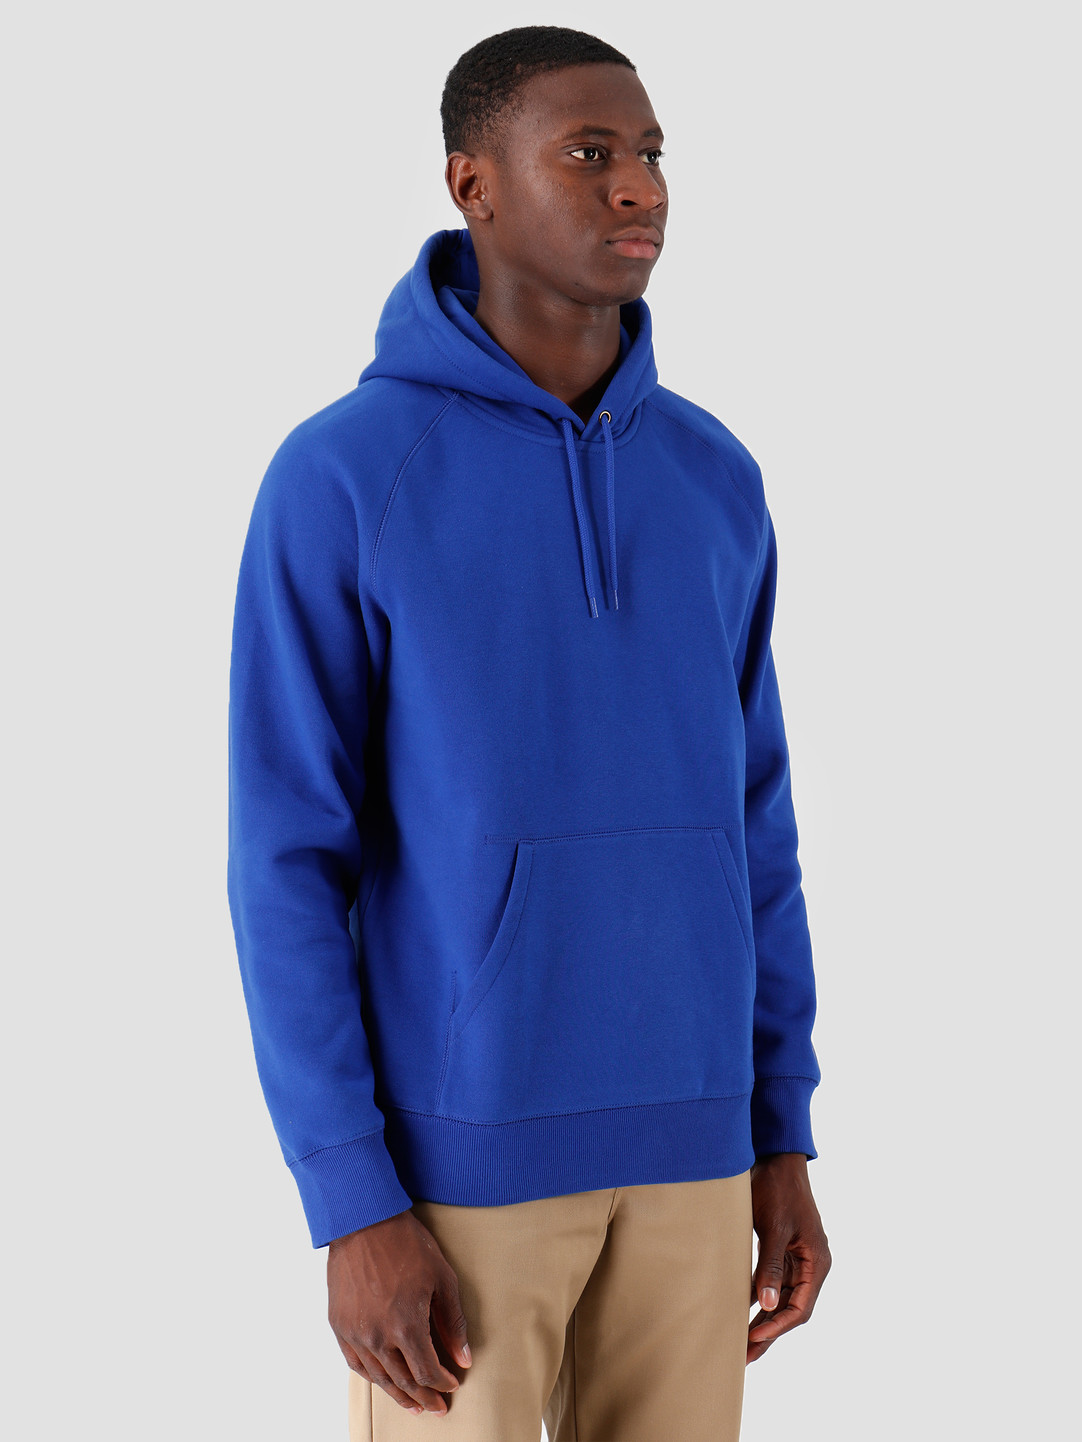 Carhartt WIP Carhartt WIP Hooded Chase Sweat Thunder Blue Gold I026384